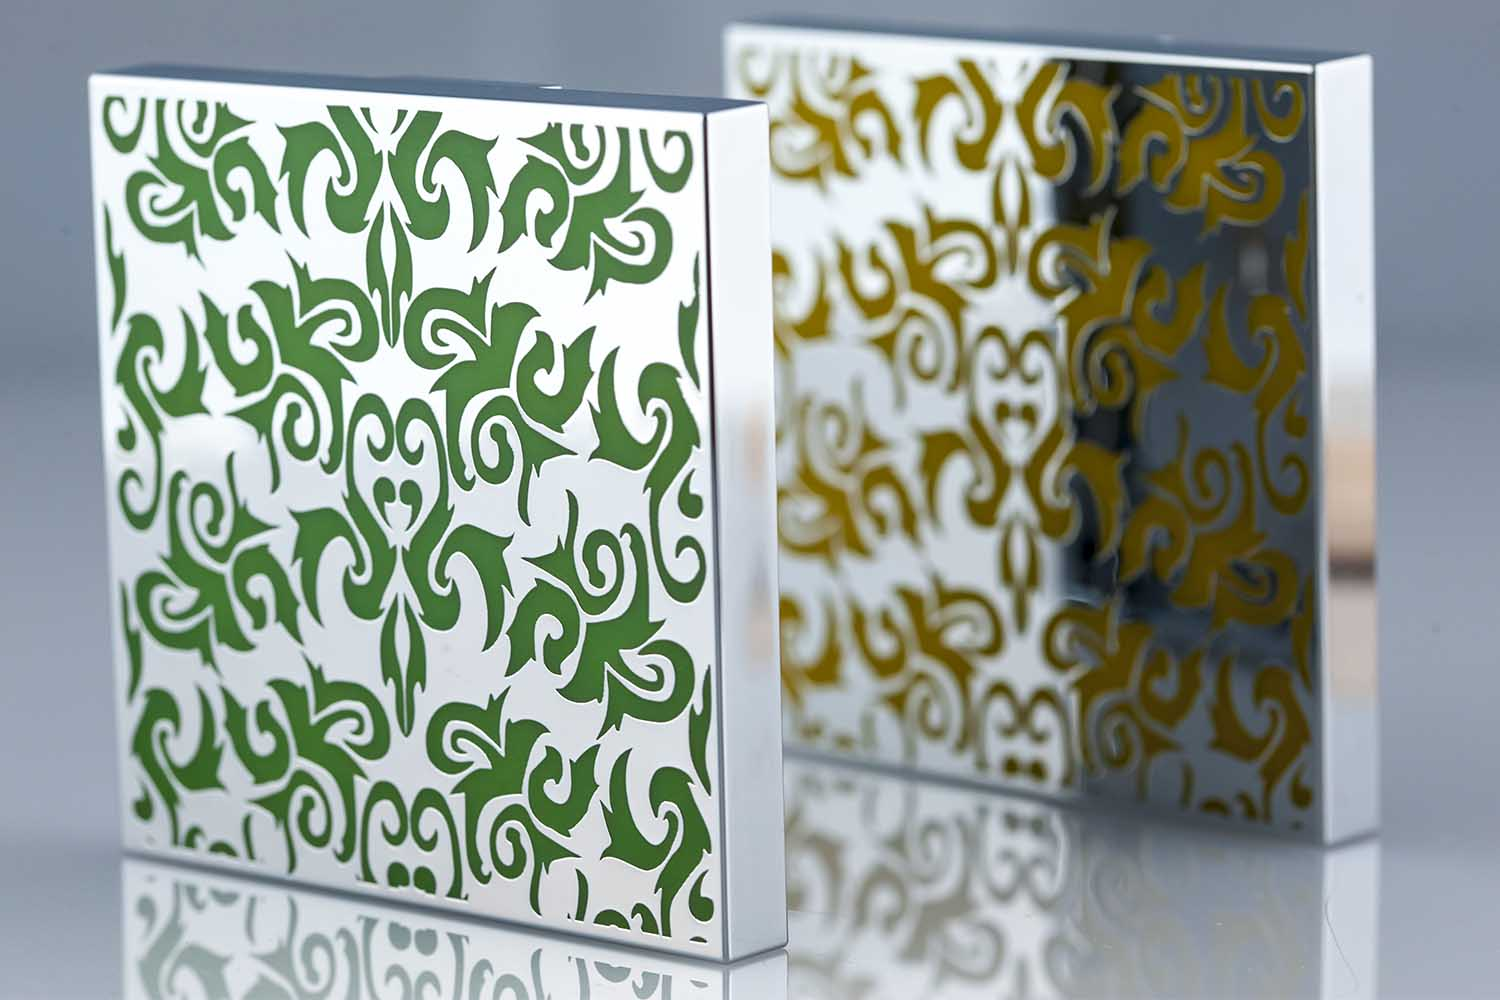 Electro-plated-plastic-finishes-Selective-electroplating-Finished-square